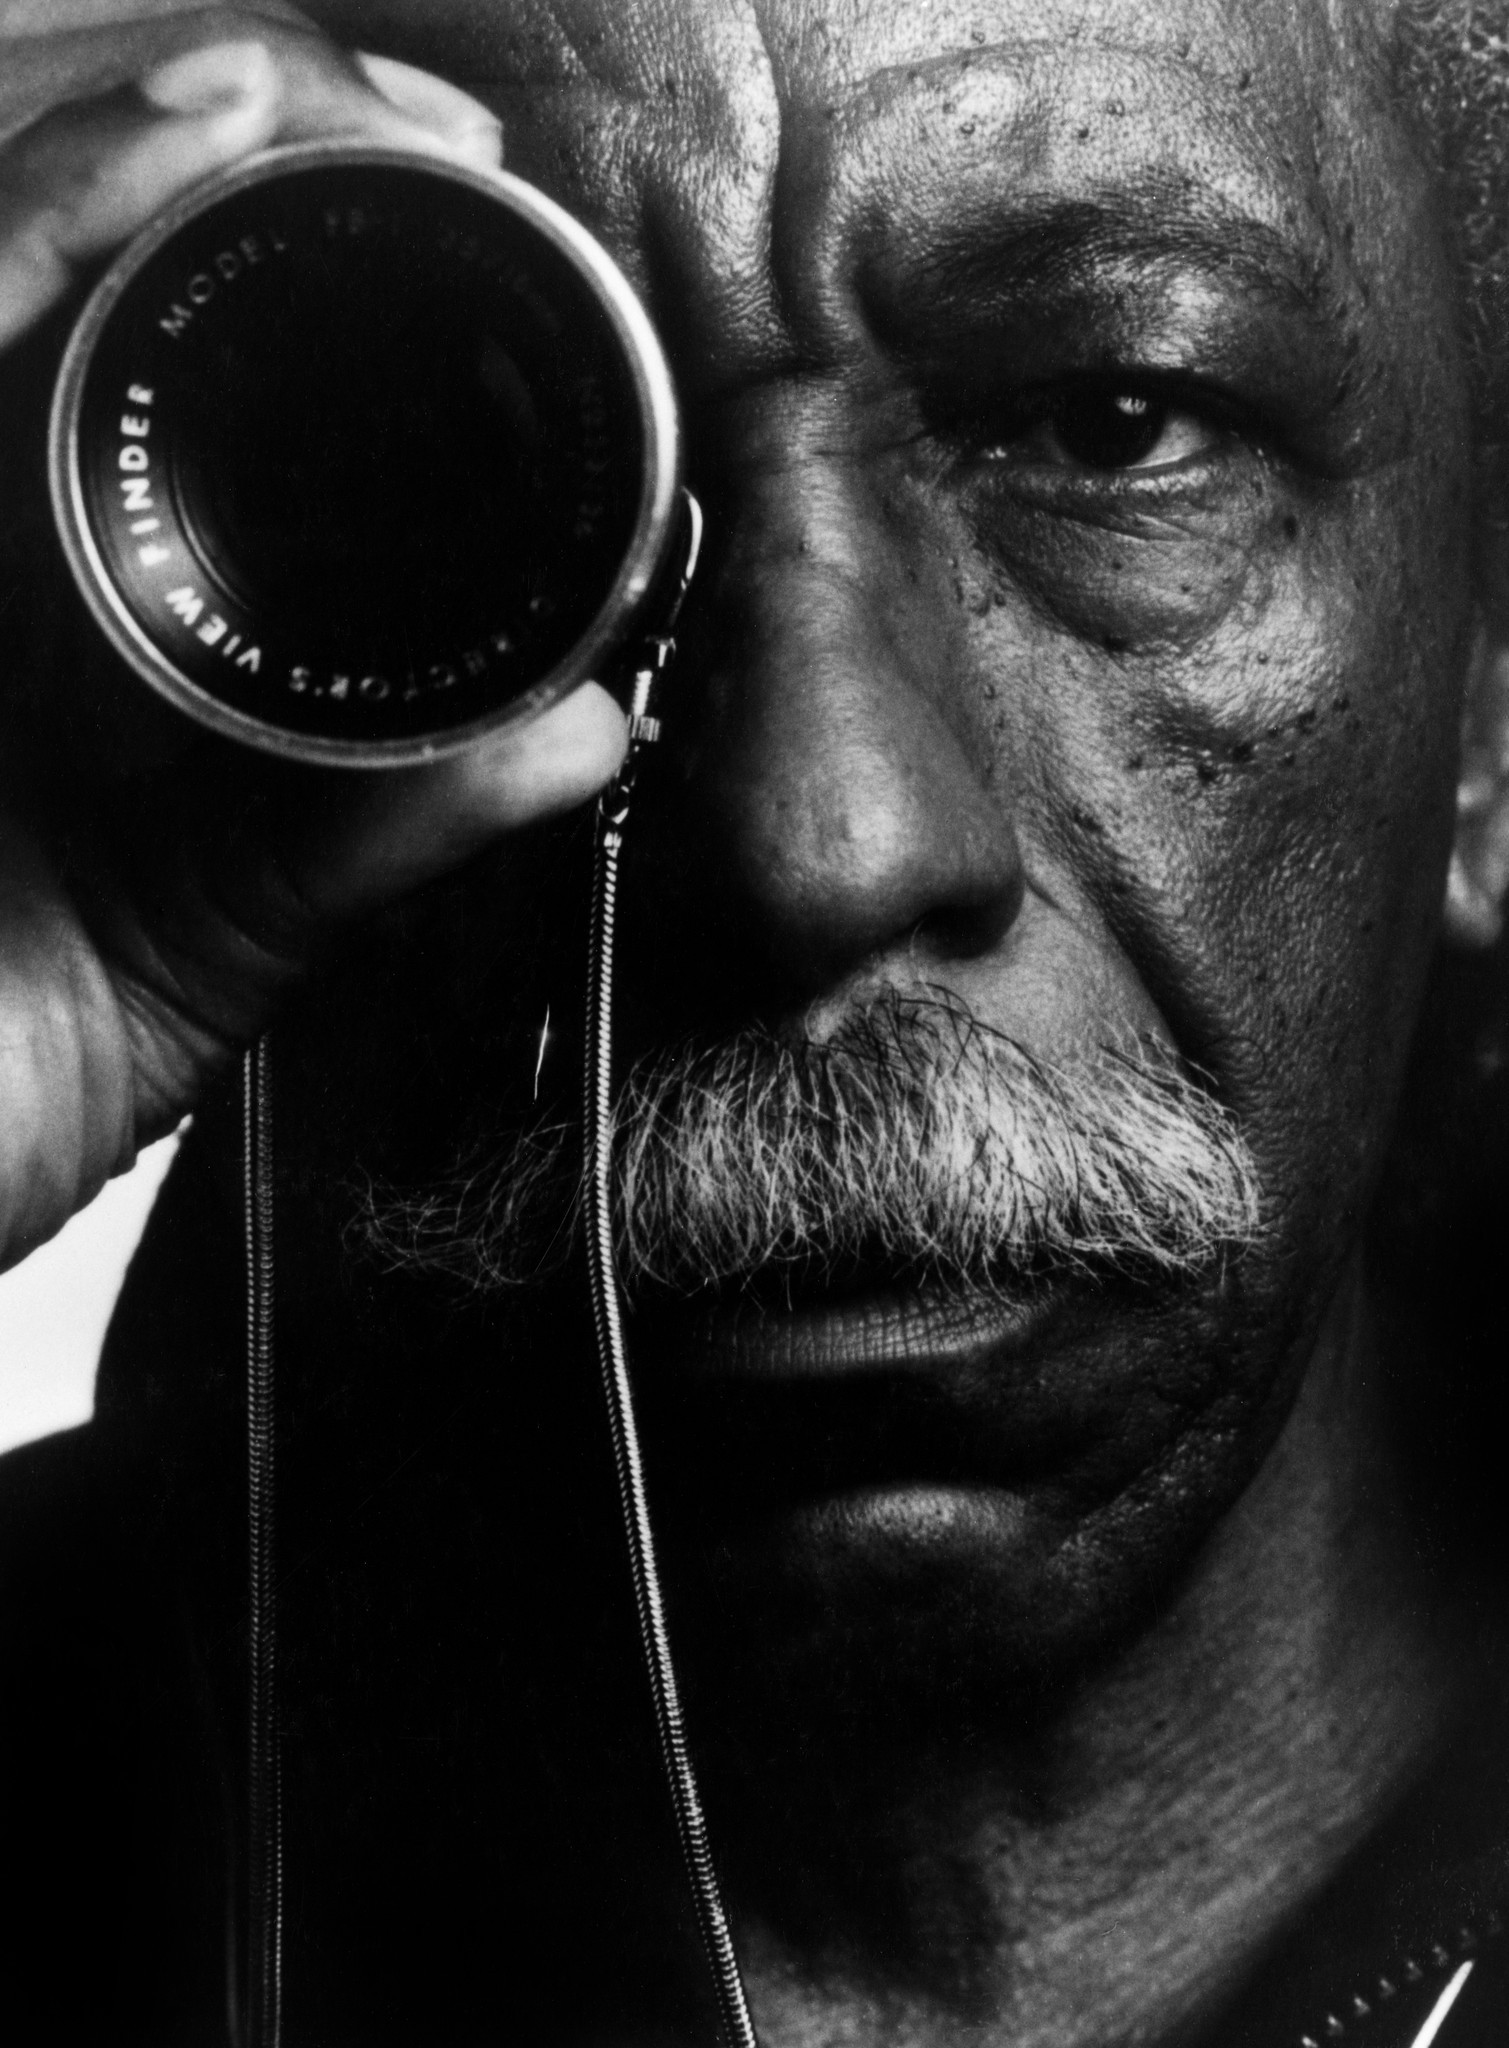 gordon parks photography essay Parks and ellison collaborated on two historic photo-essays, now published in full for the first time it is relatively unknown that the photographer gordon parks was close friends with ralph ellison, author of the acclaimed 1952 novel invisible man.